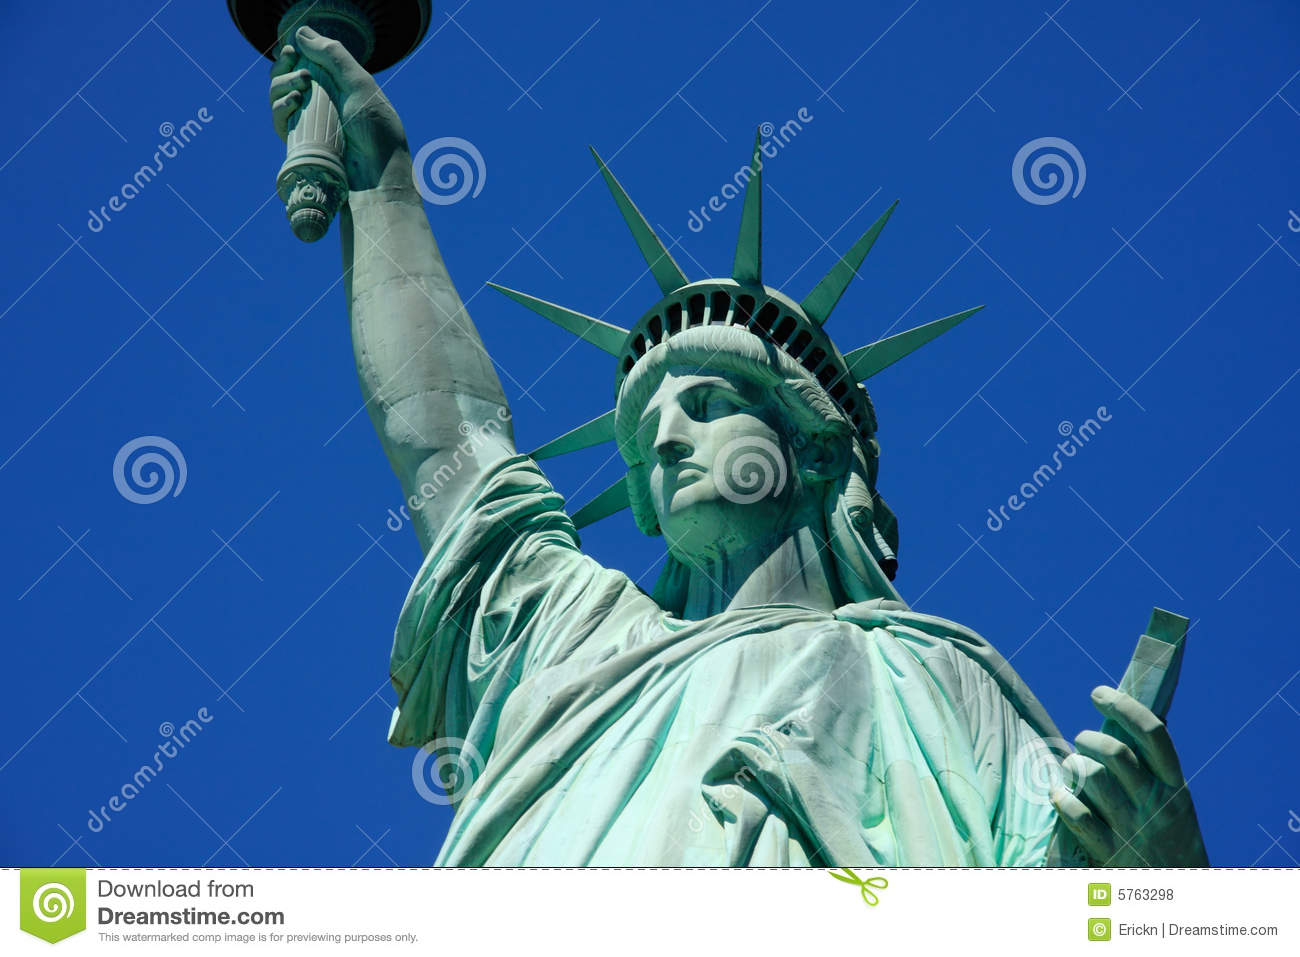 Statue Of Liberty Close-up Royalty Free Stock Photos - Image: 5763298